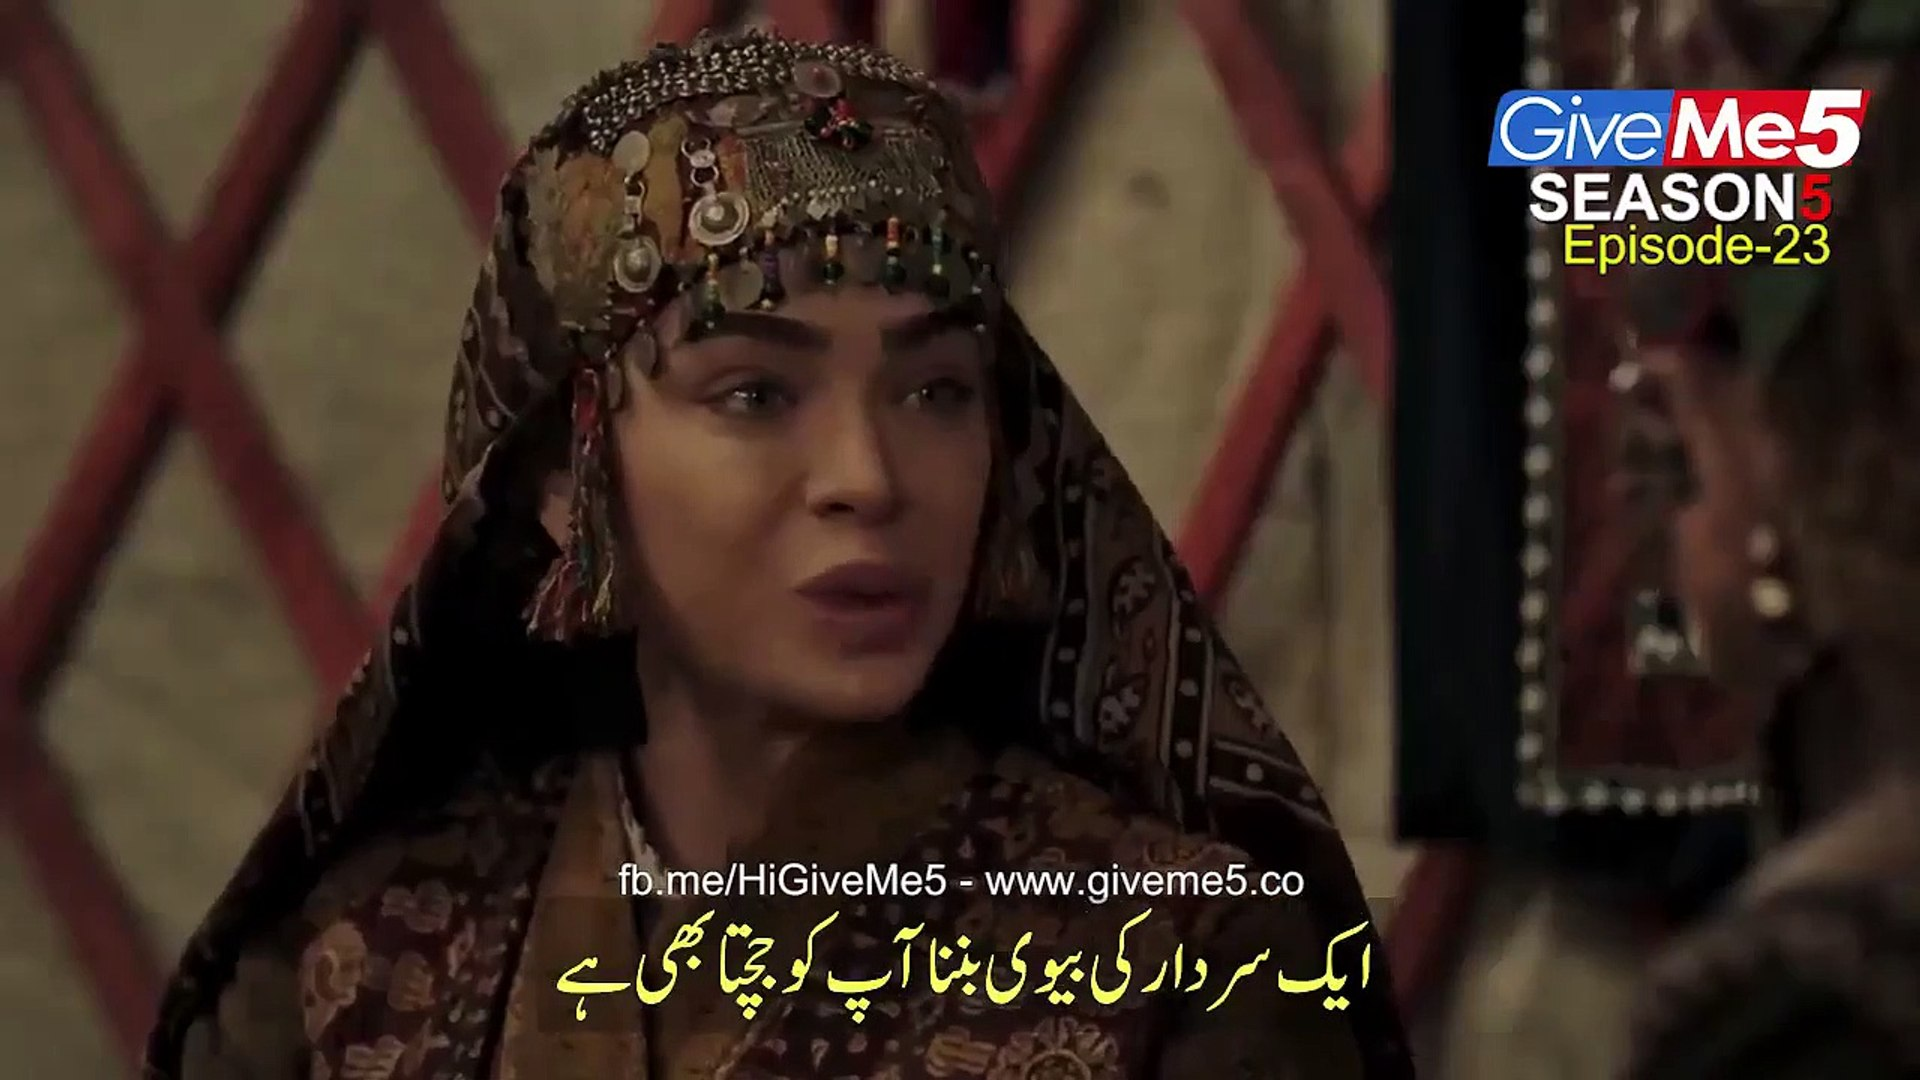 Dirilis Ertugrul Ghazi Season 5 in Urdu Subtitle Episode 23 & 24